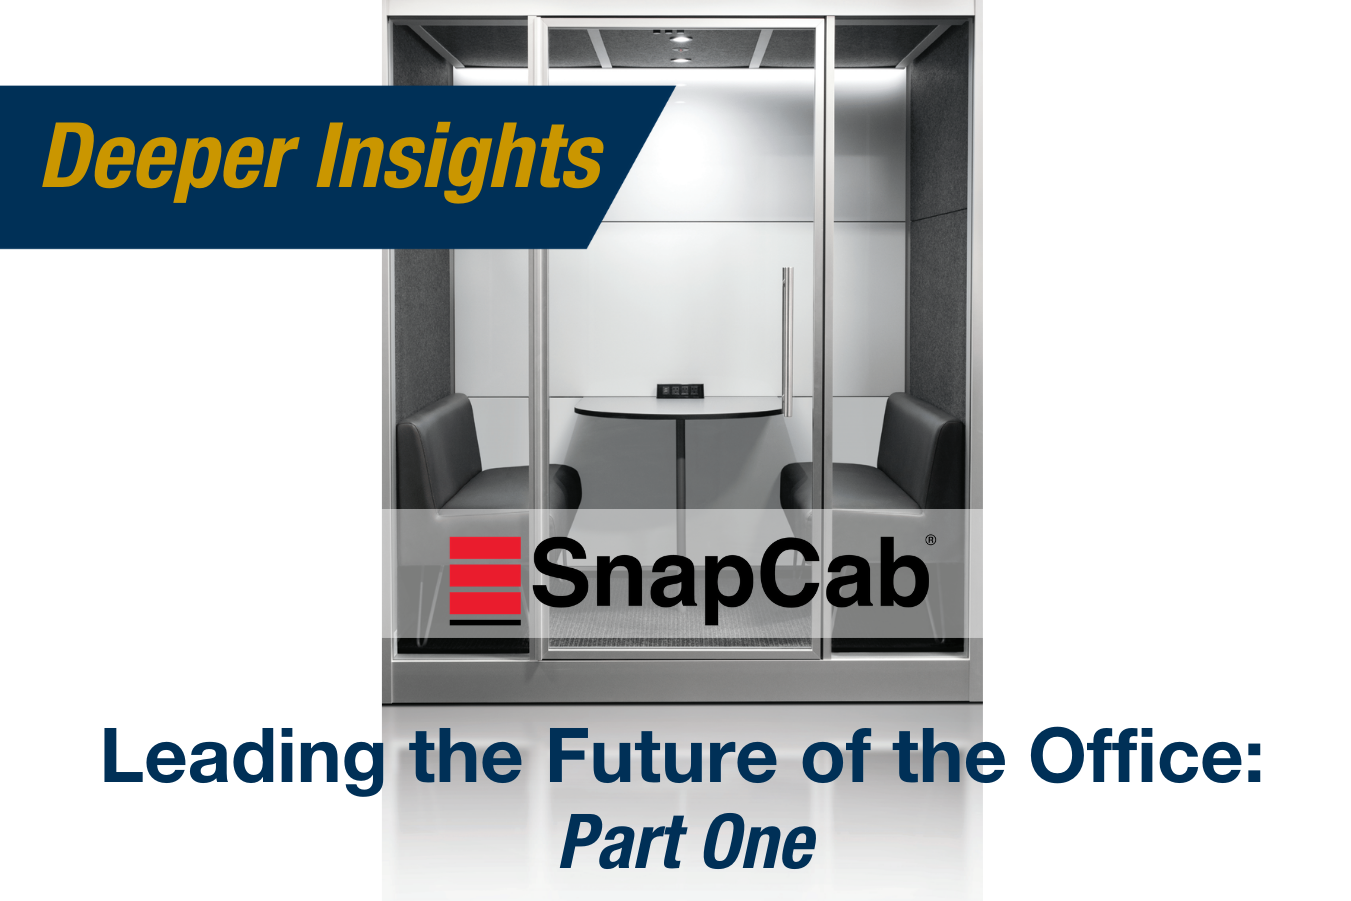 SnapCab Future Of The Office